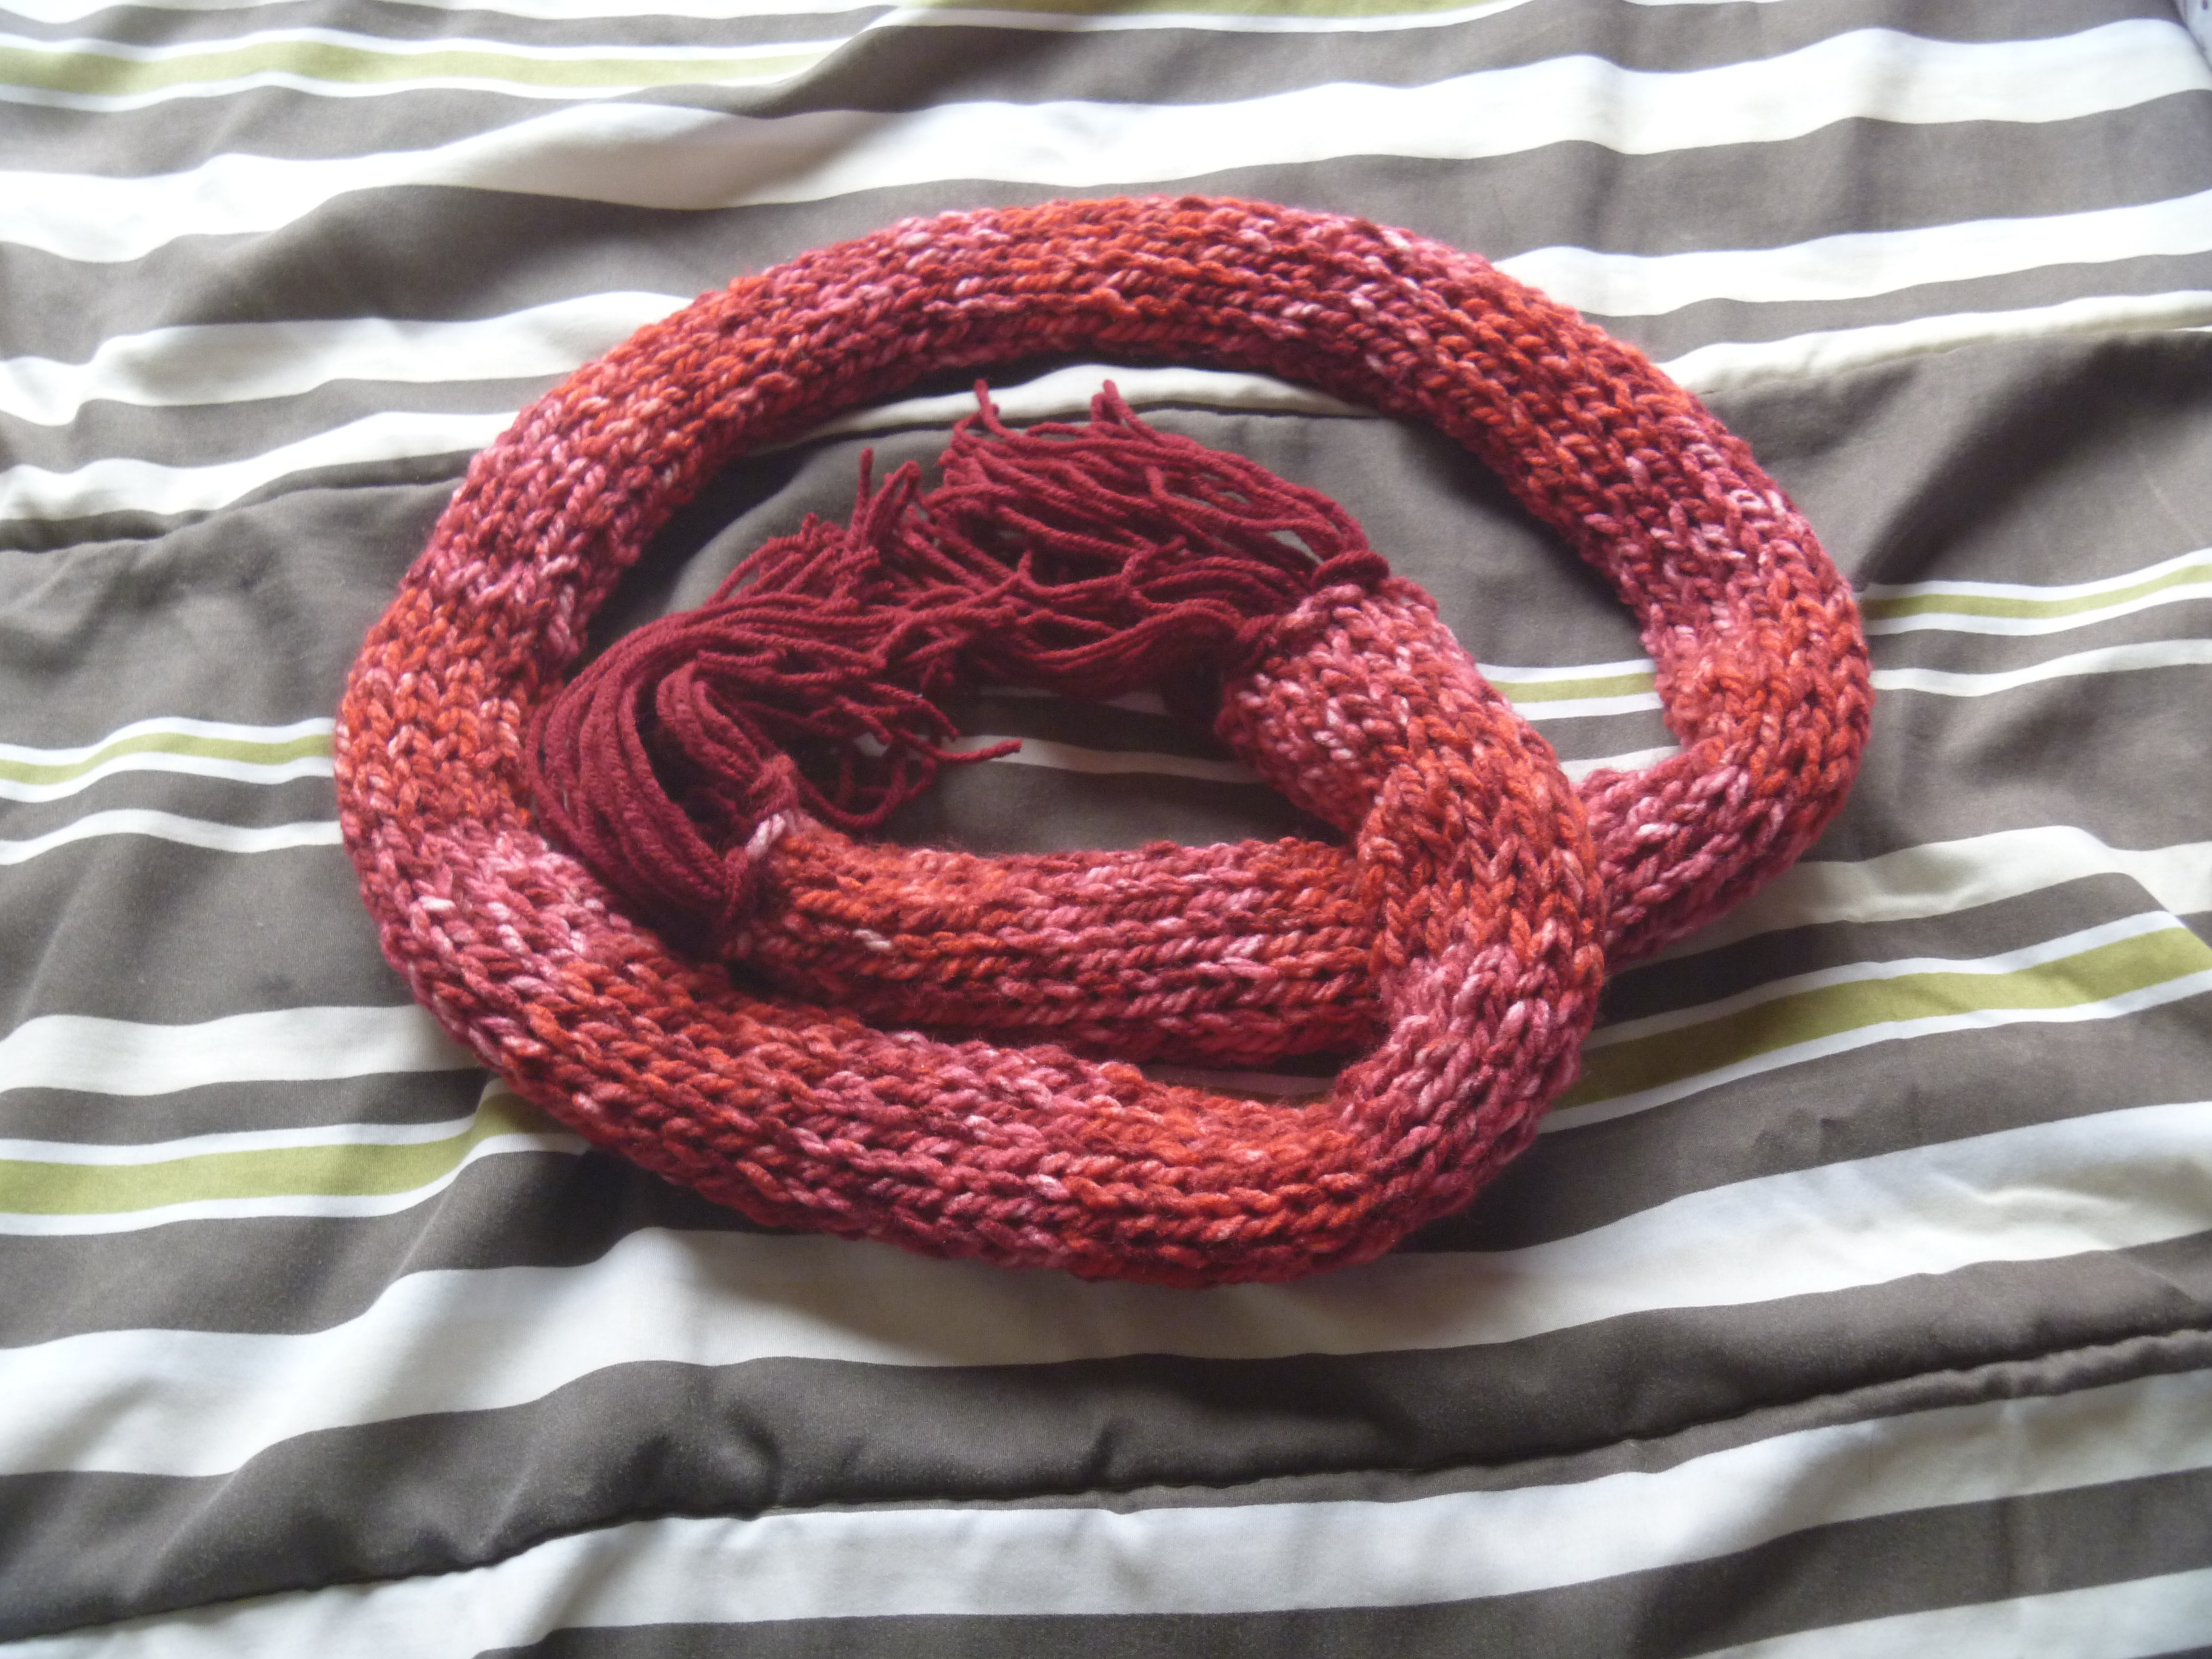 curled up finished red fringed scarf